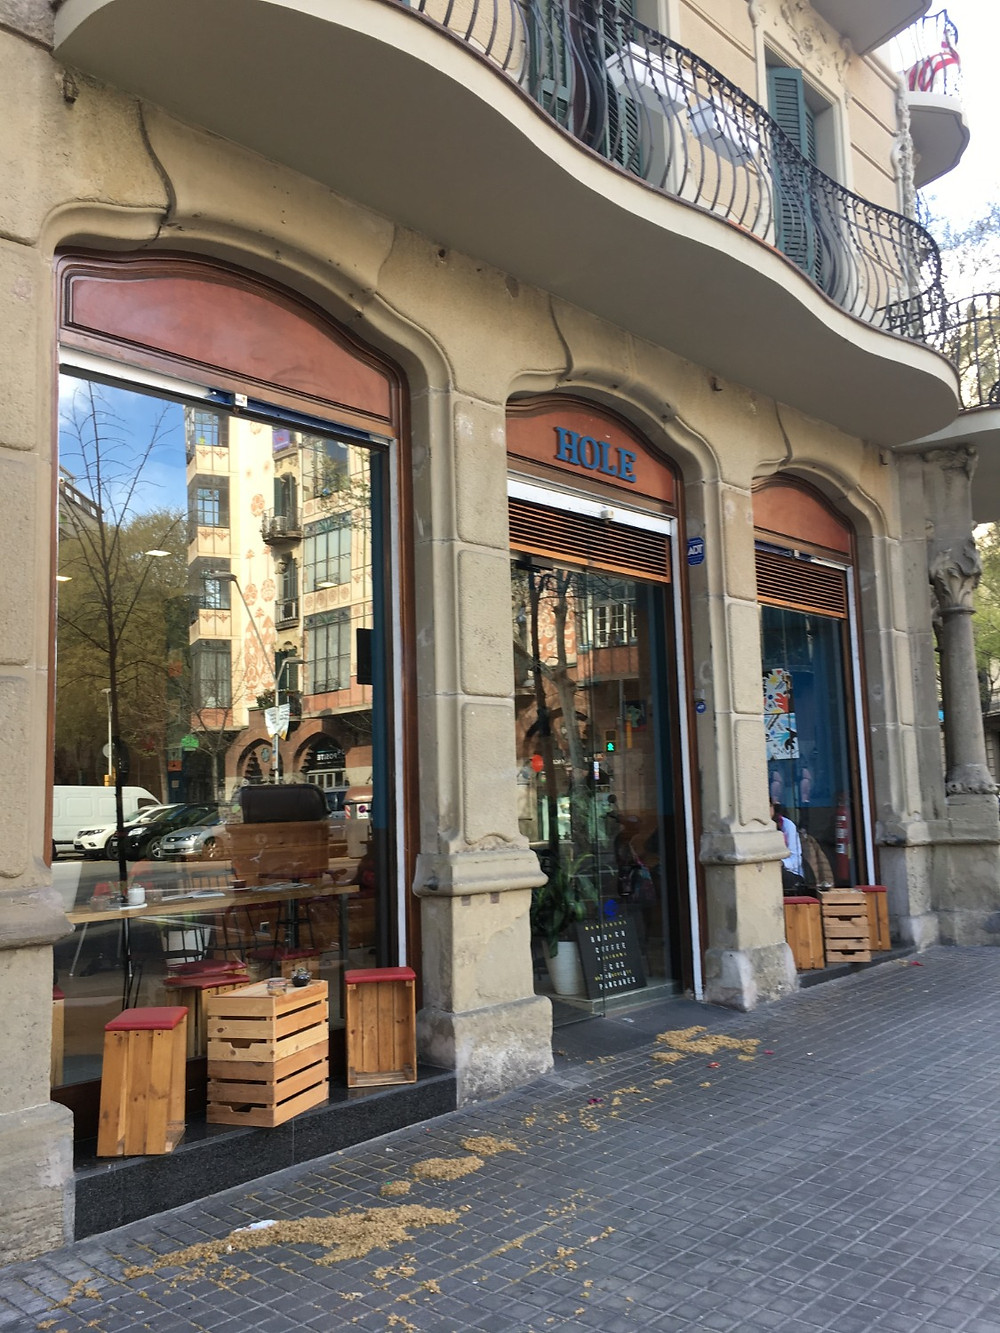 Hole cafe in Barcelona